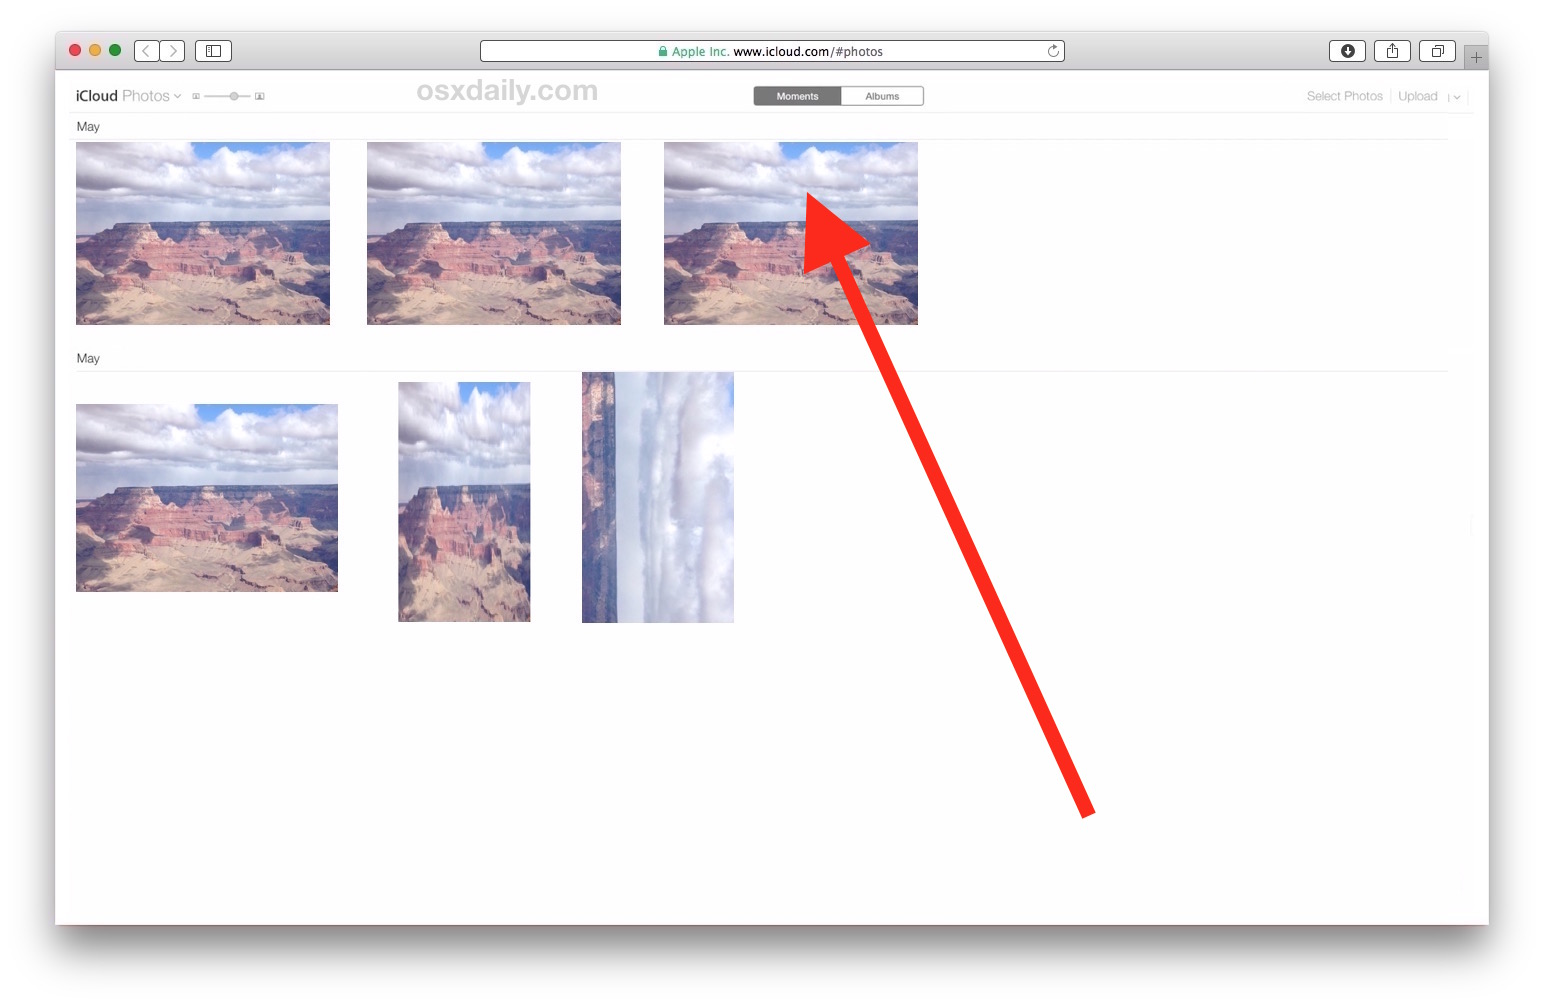 Choose the photo you want to download from iCloud